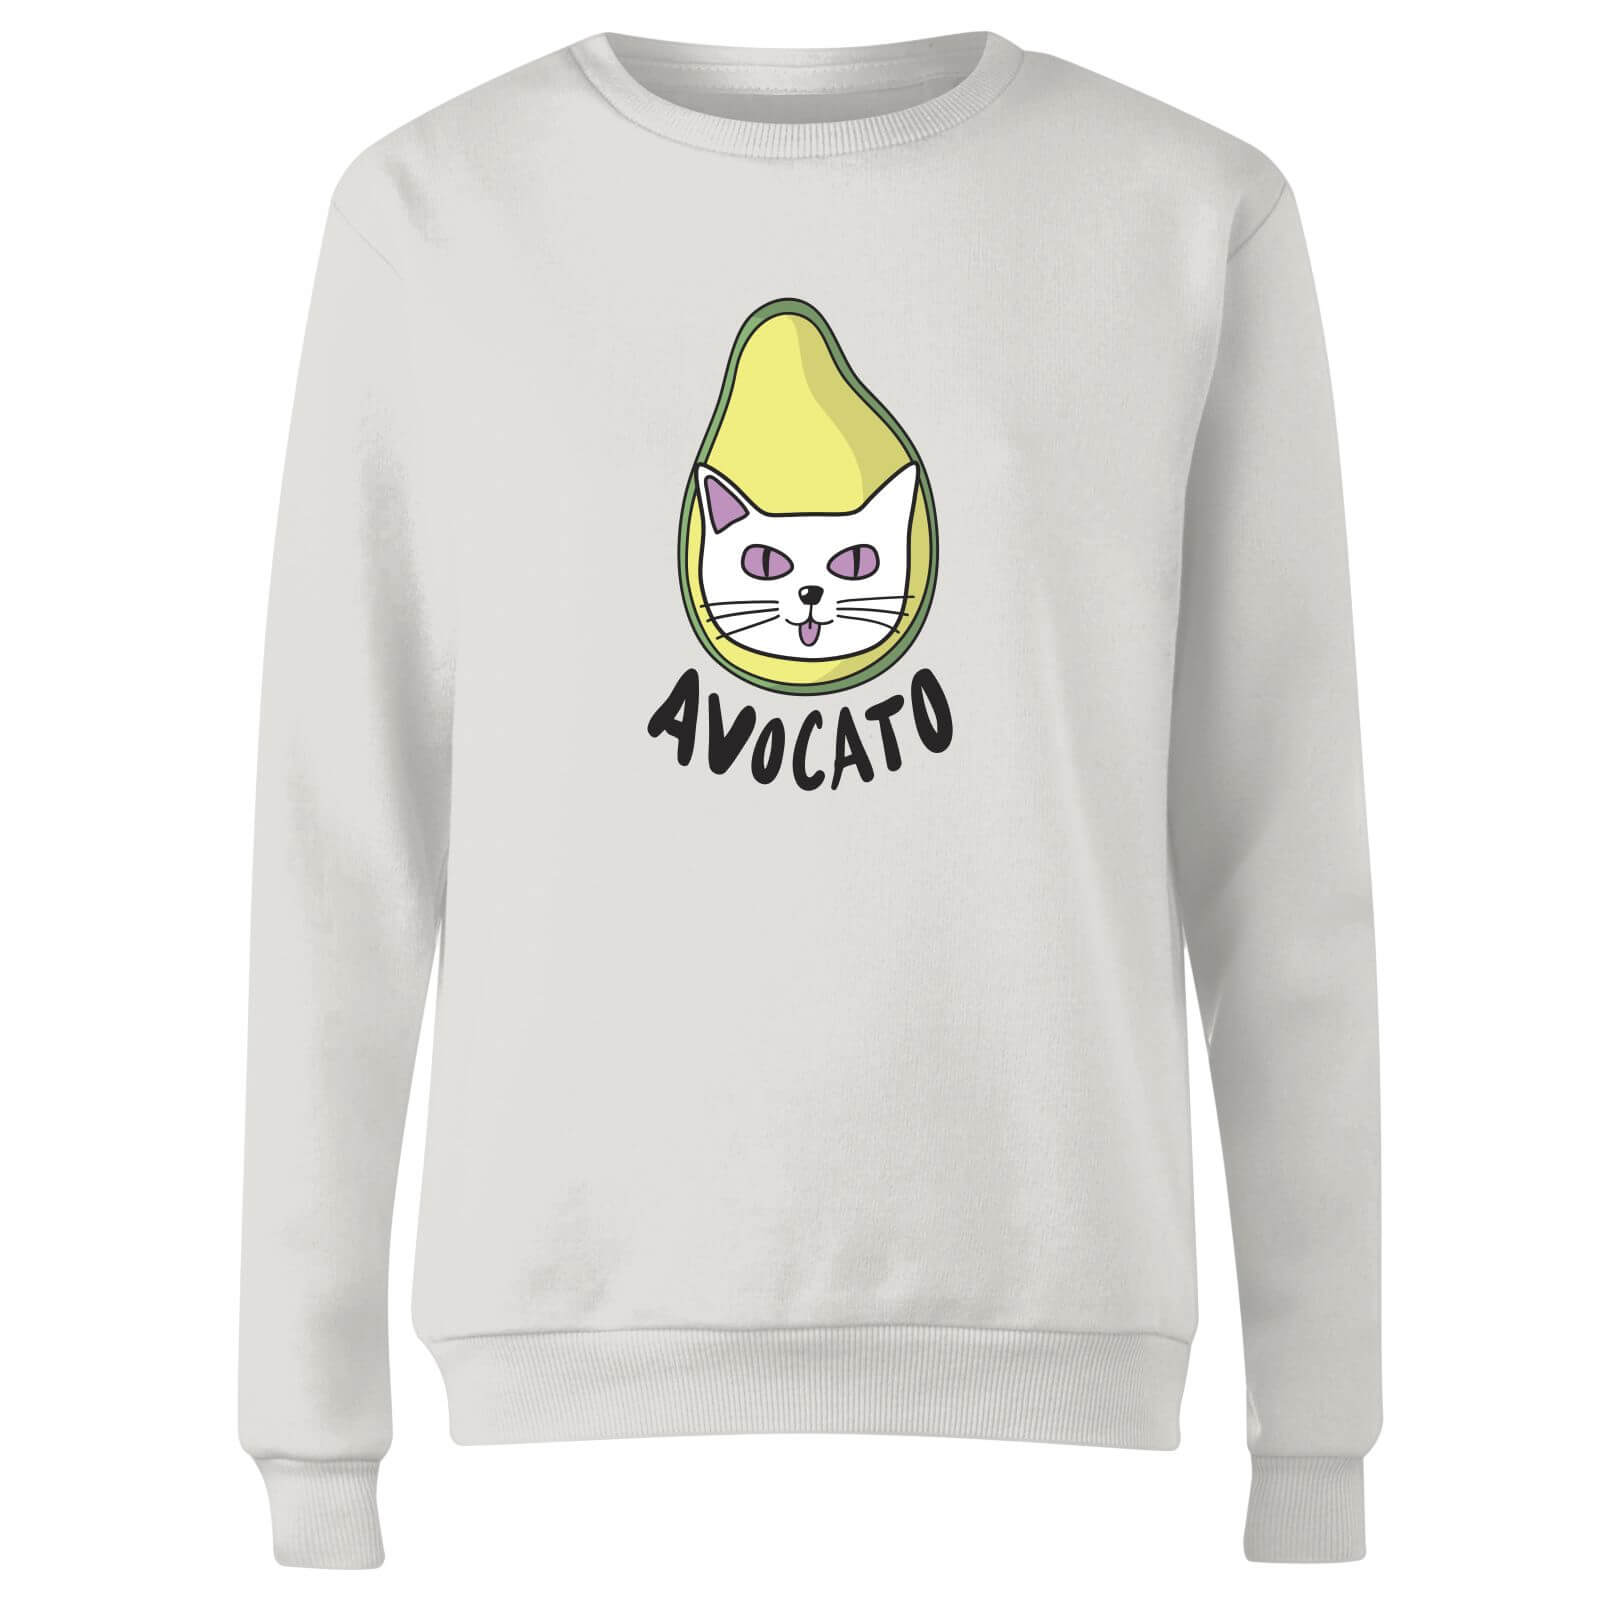 Avocato Women